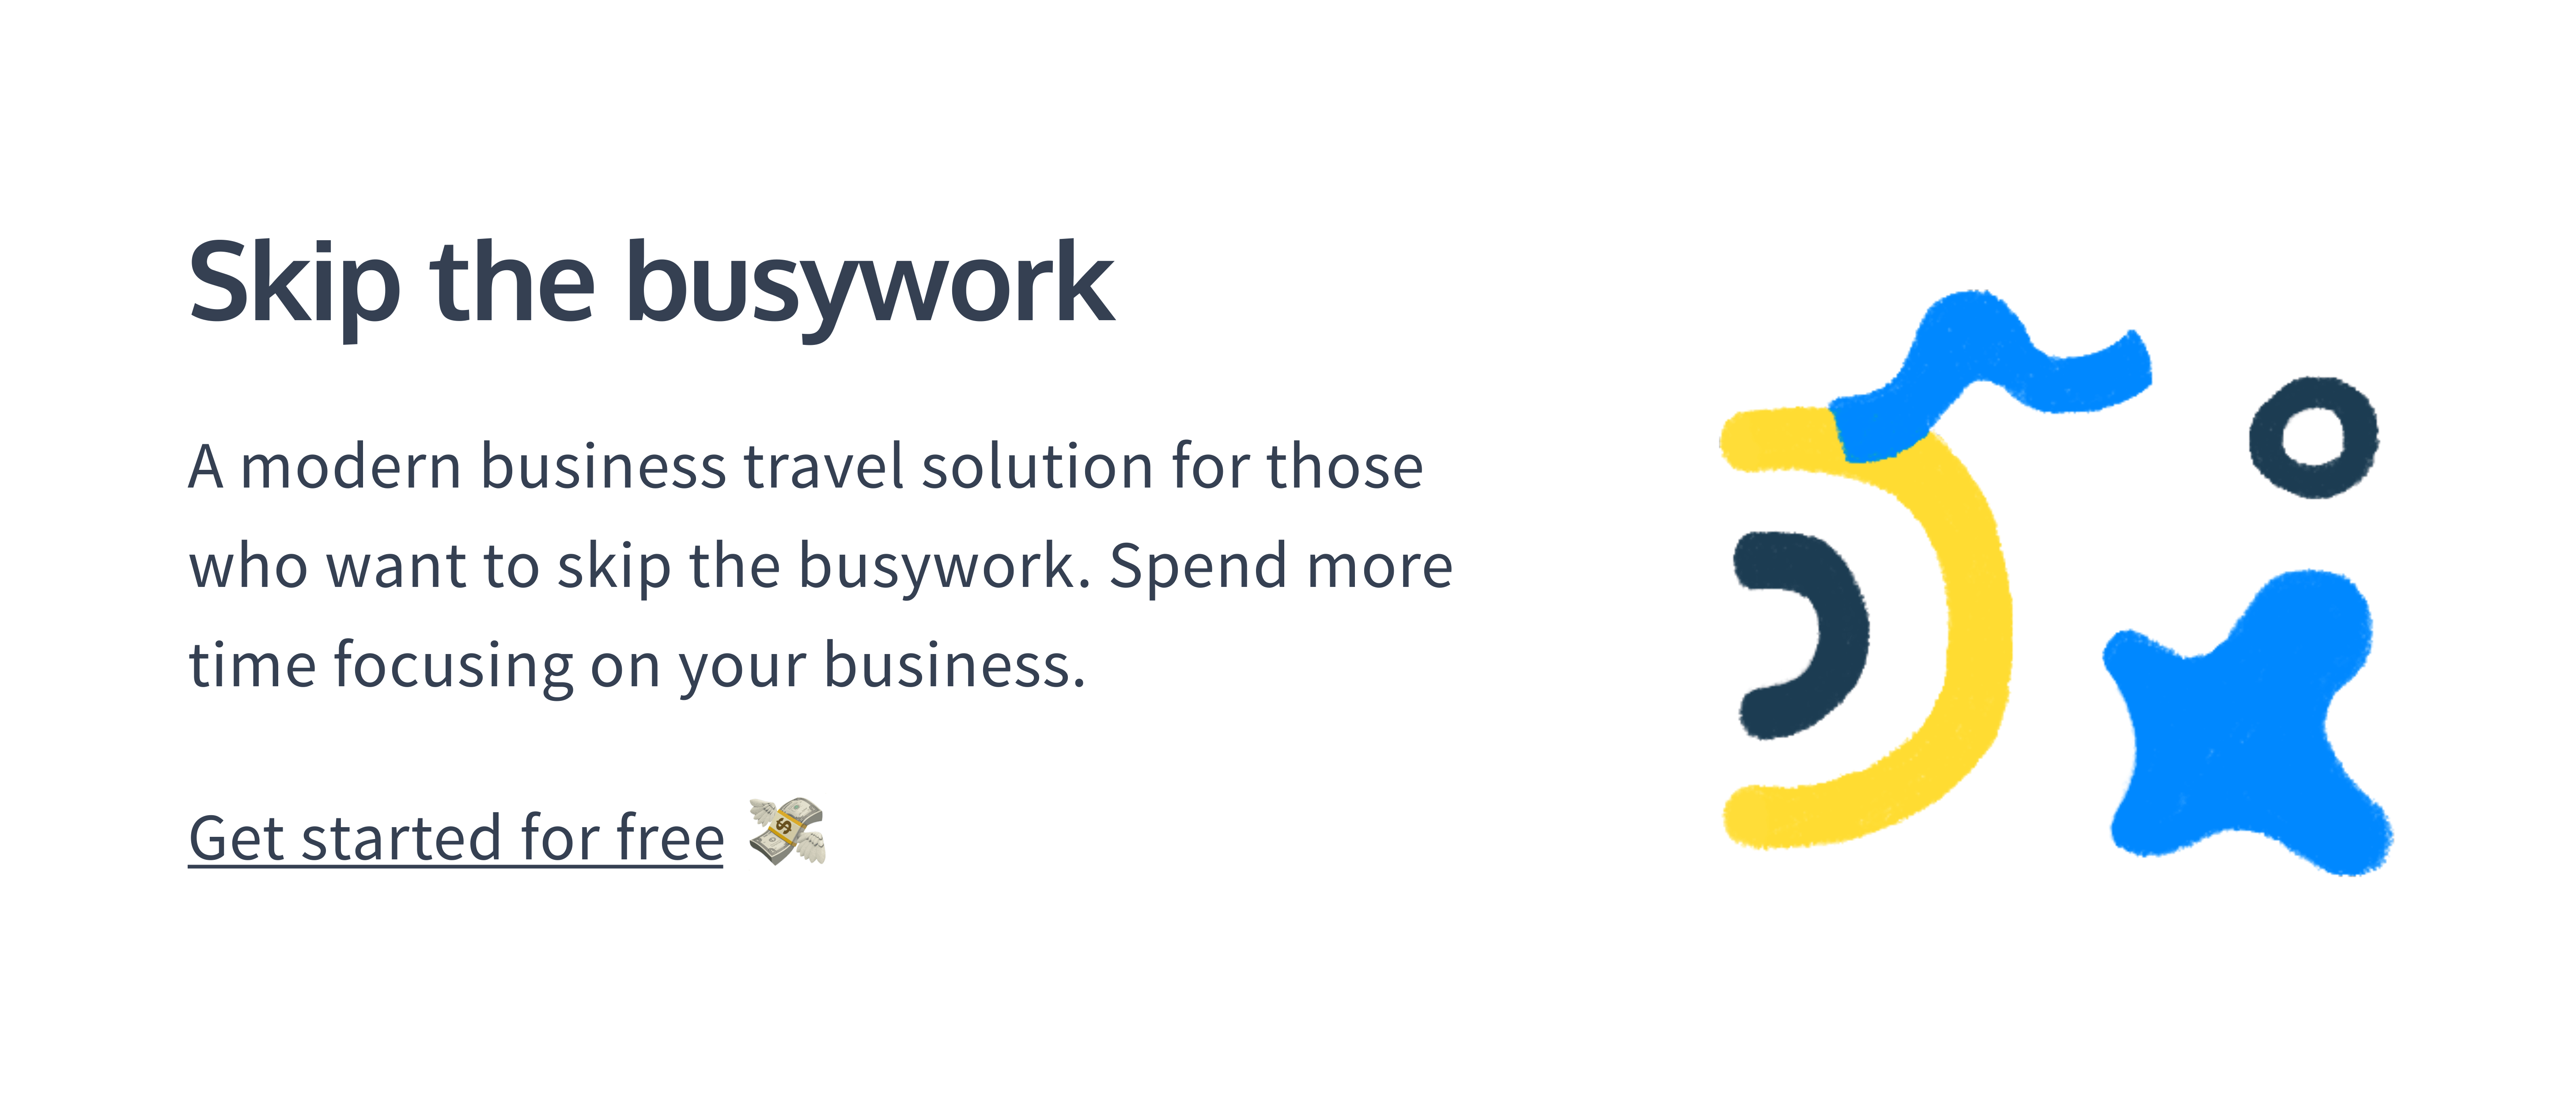 travelstop-skip-the-busywork